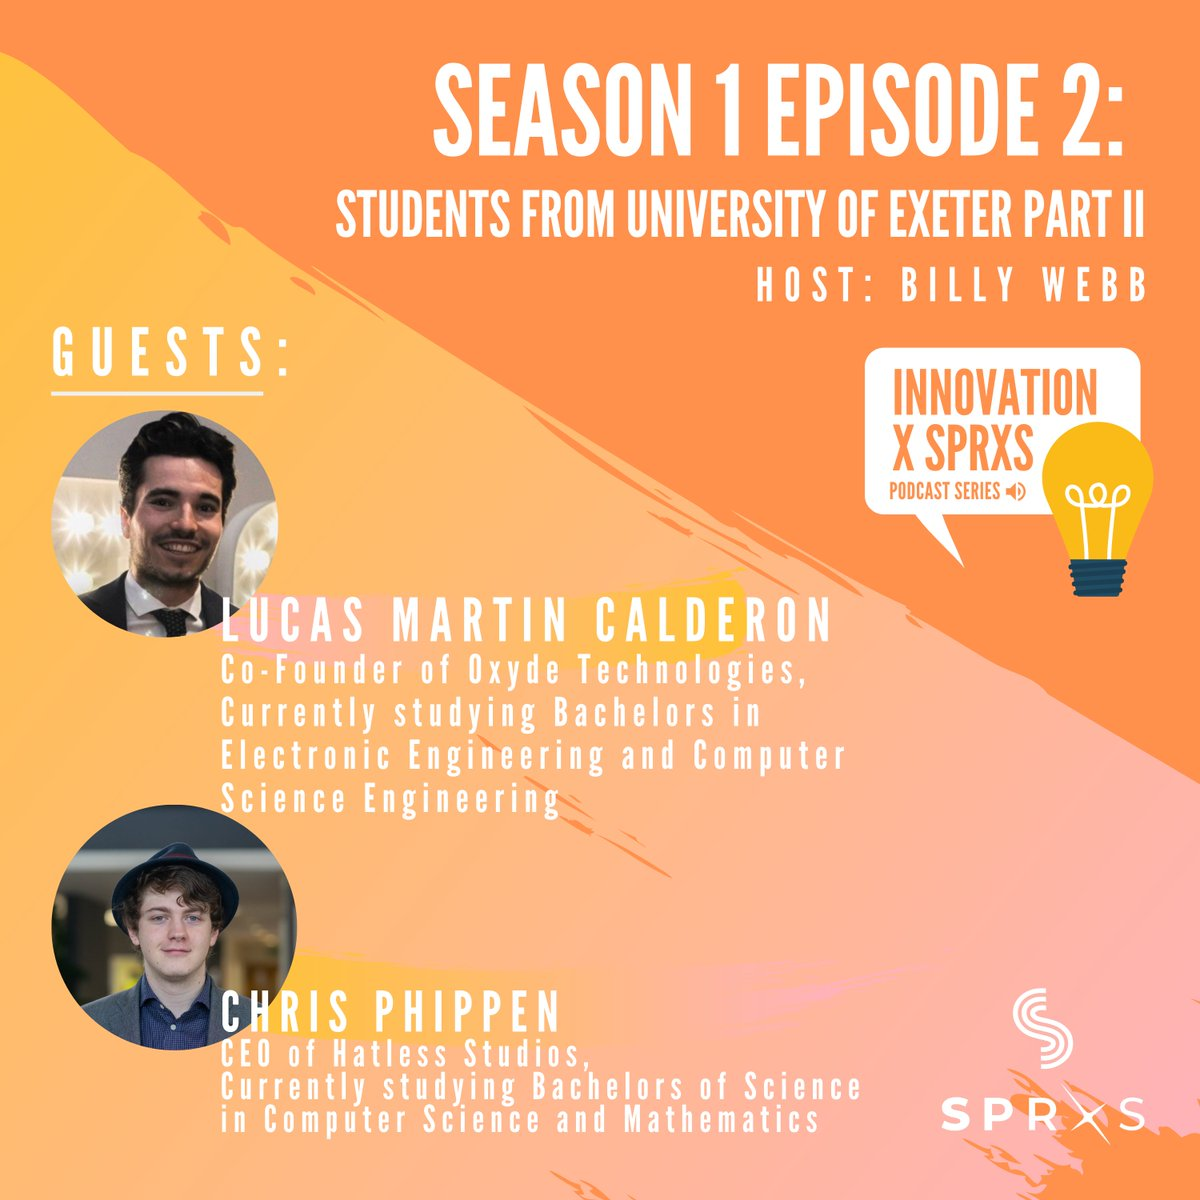 PODCAST S1E2   Part 2 of our conversation with Chris and Lucas is now live! These student entrepreneurs are making the most out of their time in university by starting their own businesses.  Listen to the podcast here: http://bit.ly/3afDnkE  #studententrepreneurs pic.twitter.com/zKIJX0tJJD